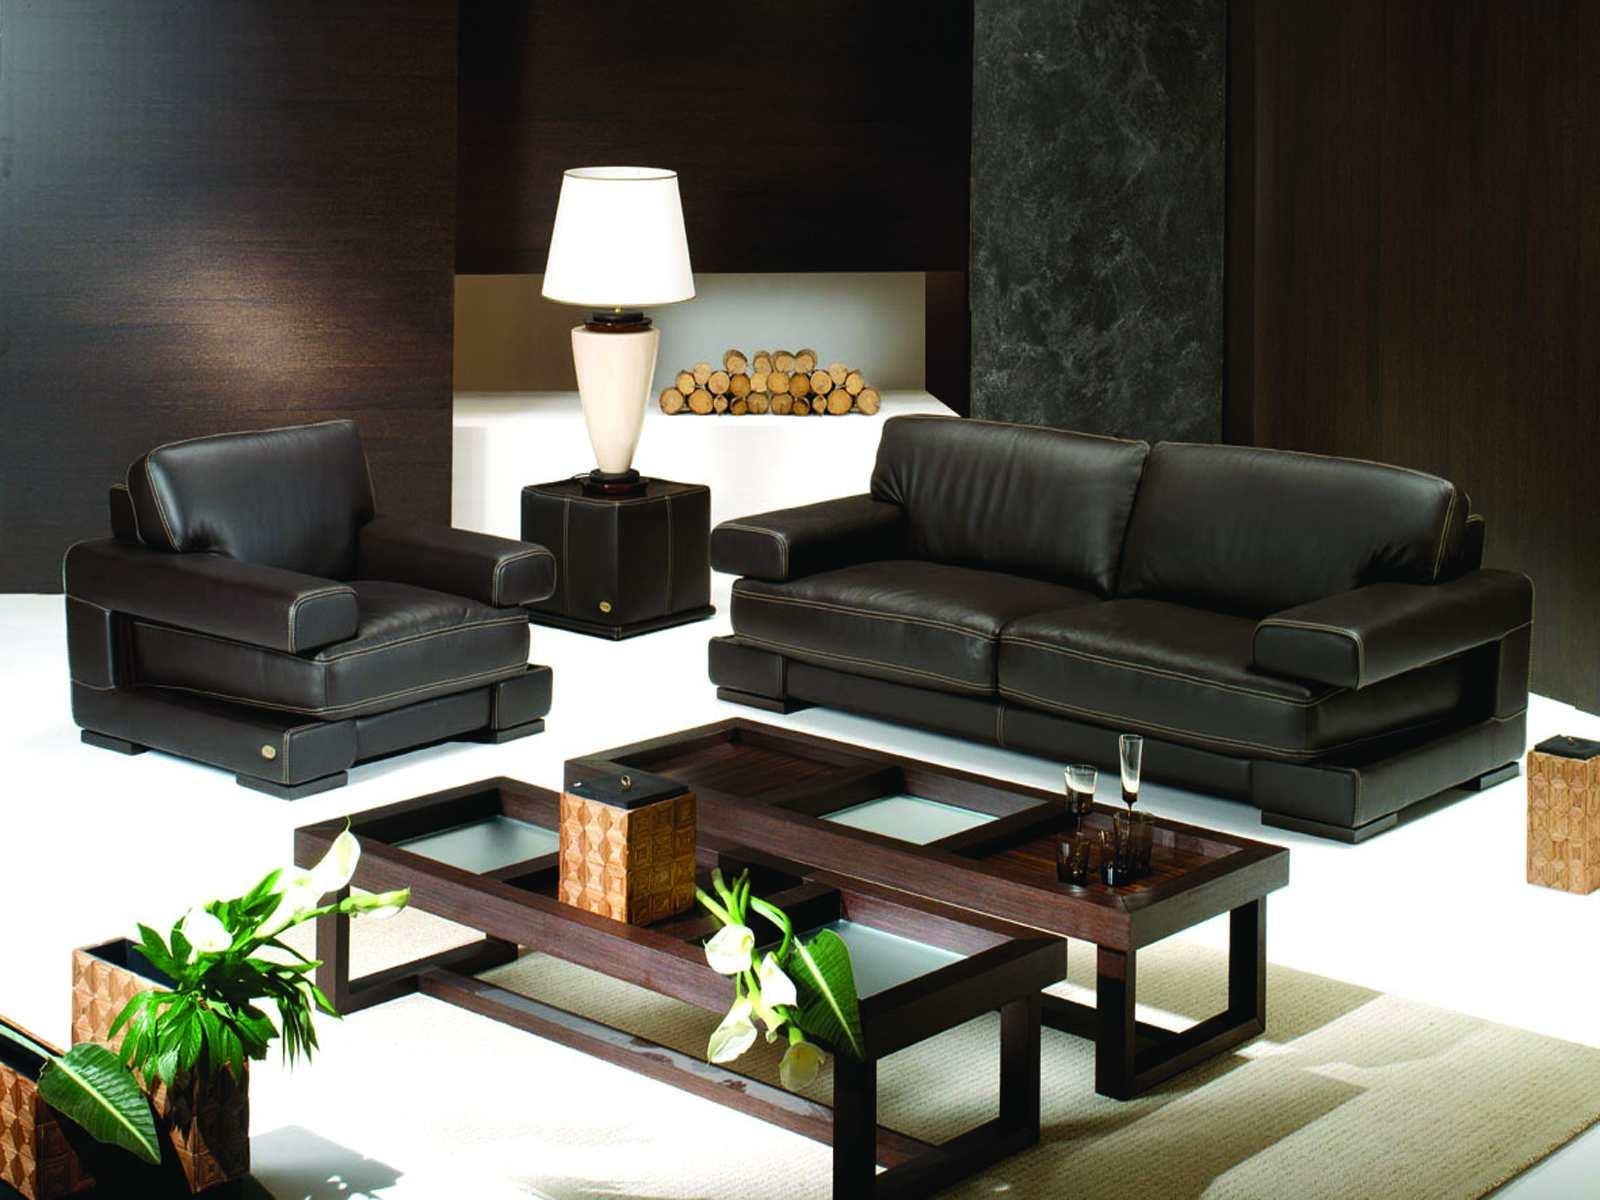 Black Living Room Furniture Living Room Design And Living Room Ideas With Regard To Black Sofas For Living Room (View 6 of 20)